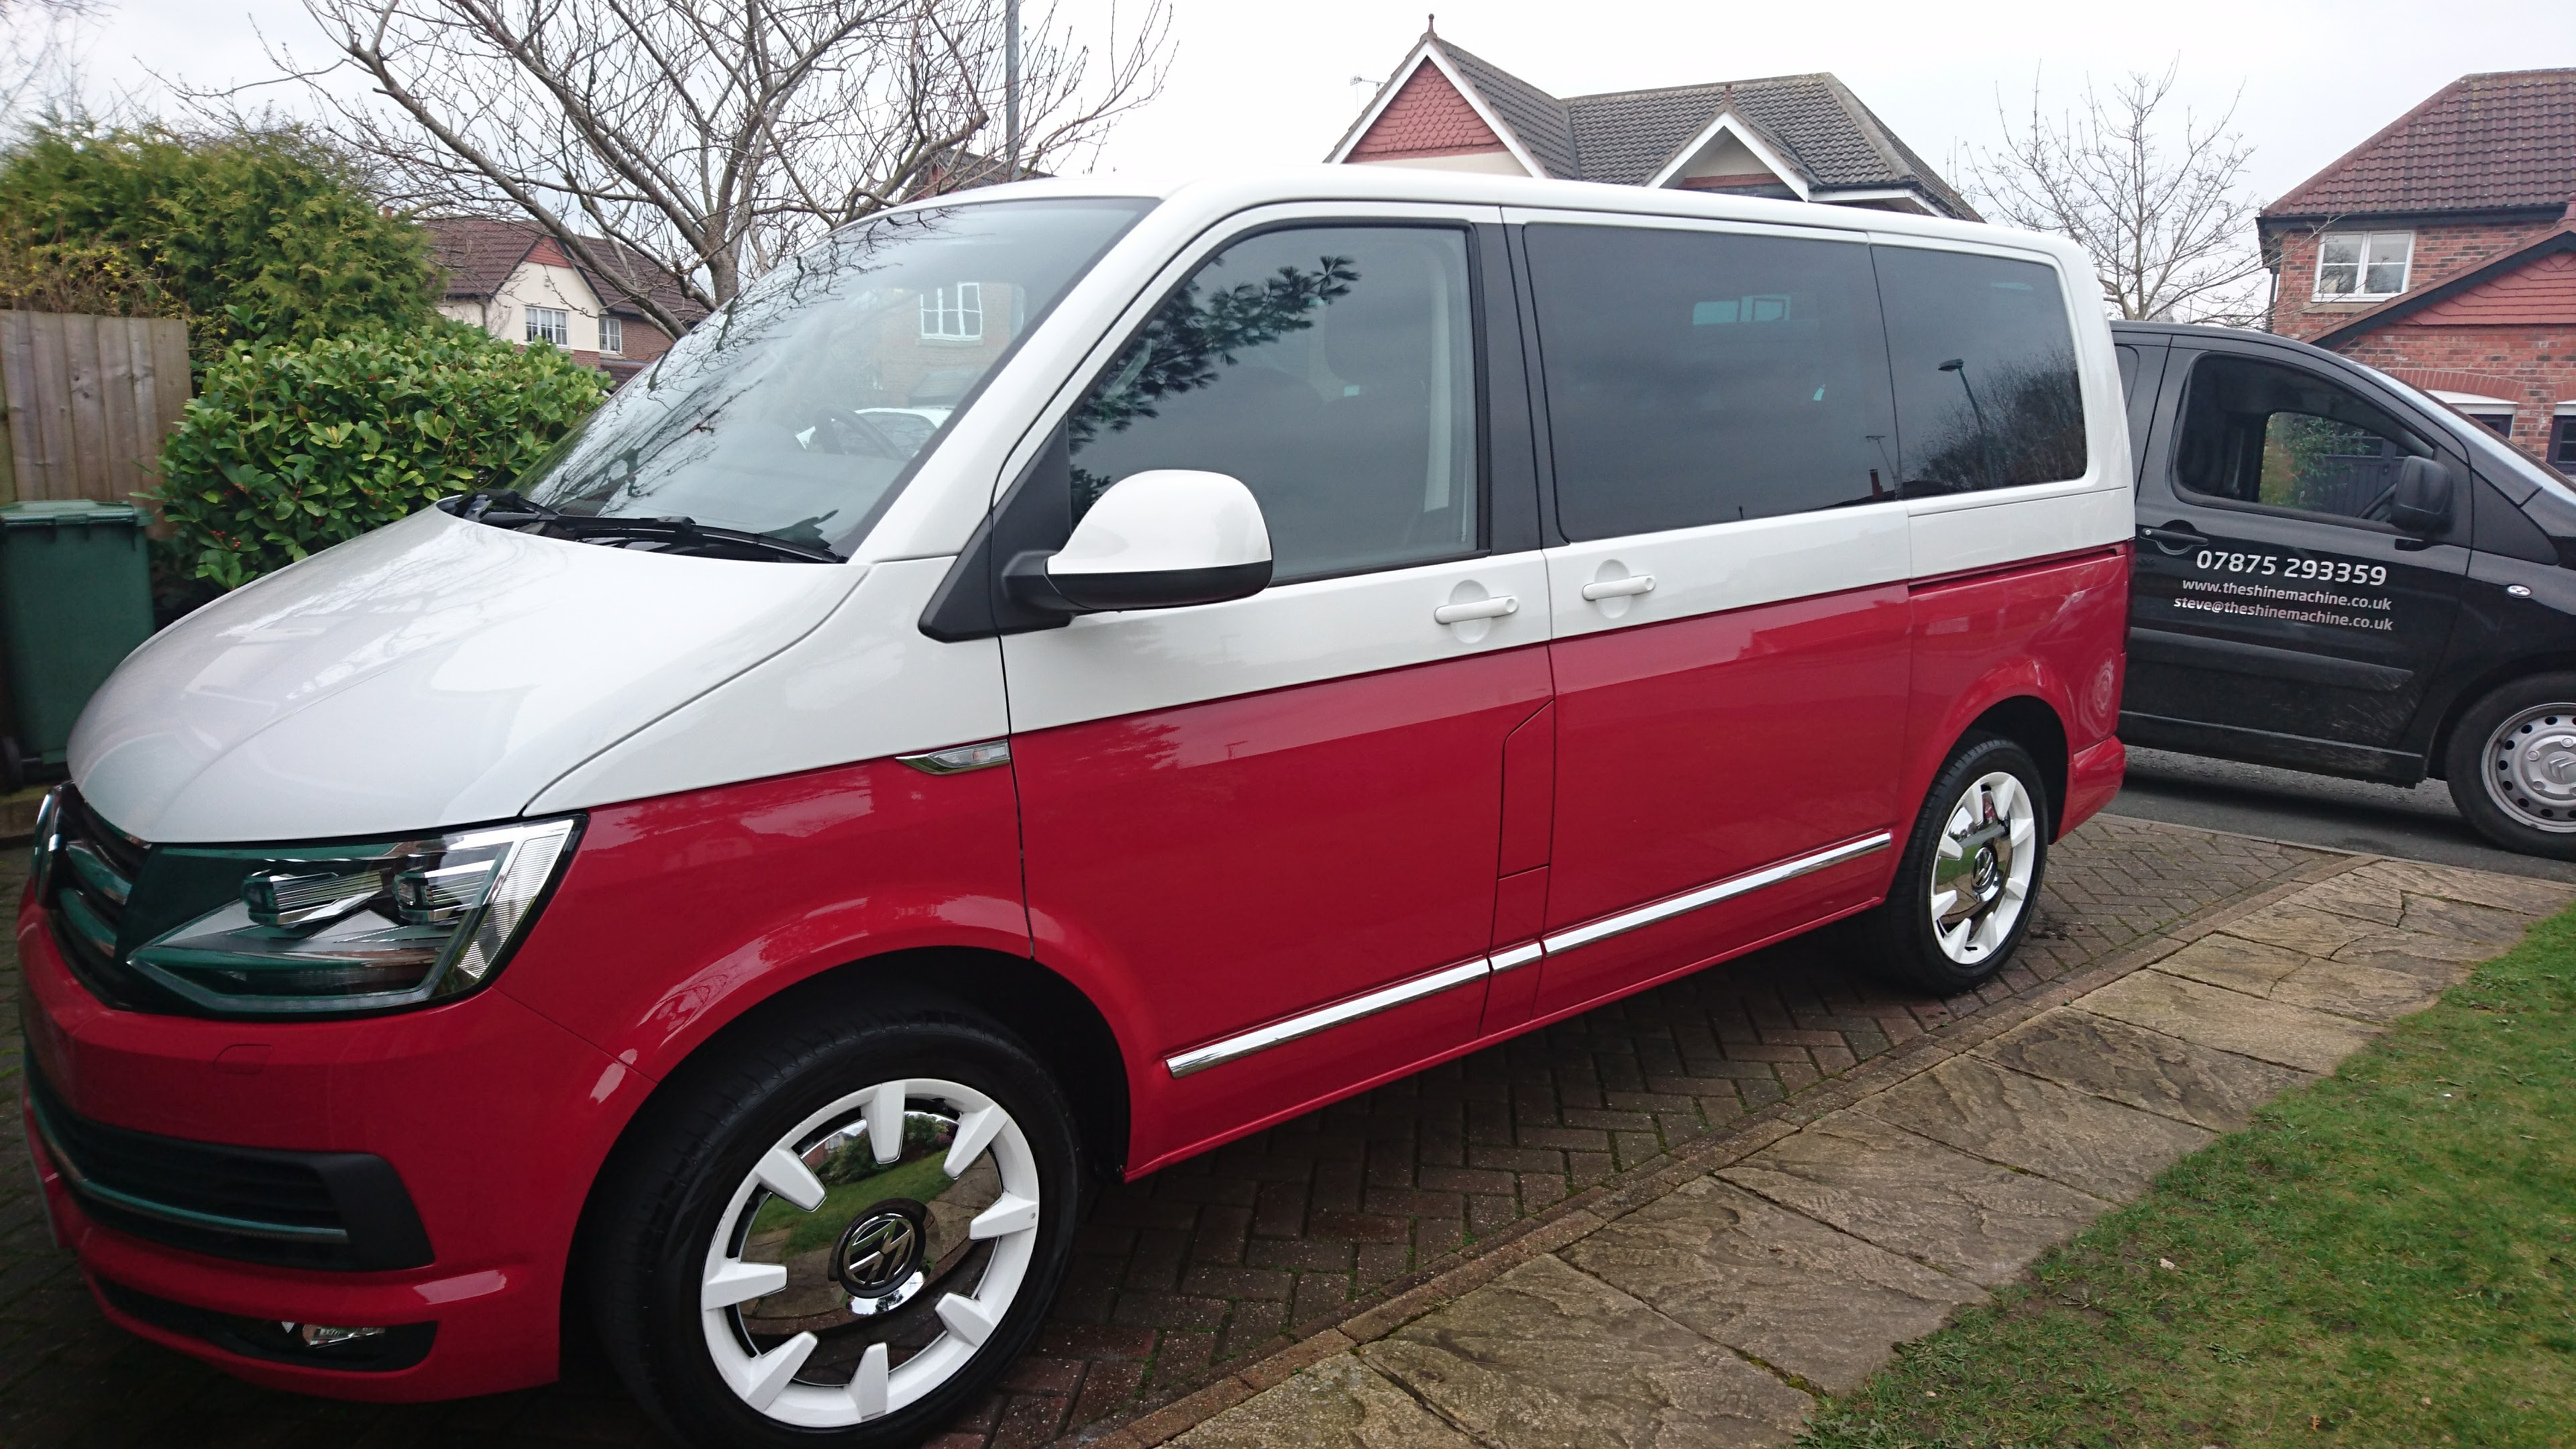 Paint Protection Of A Vw Caravelle The Shine Machine